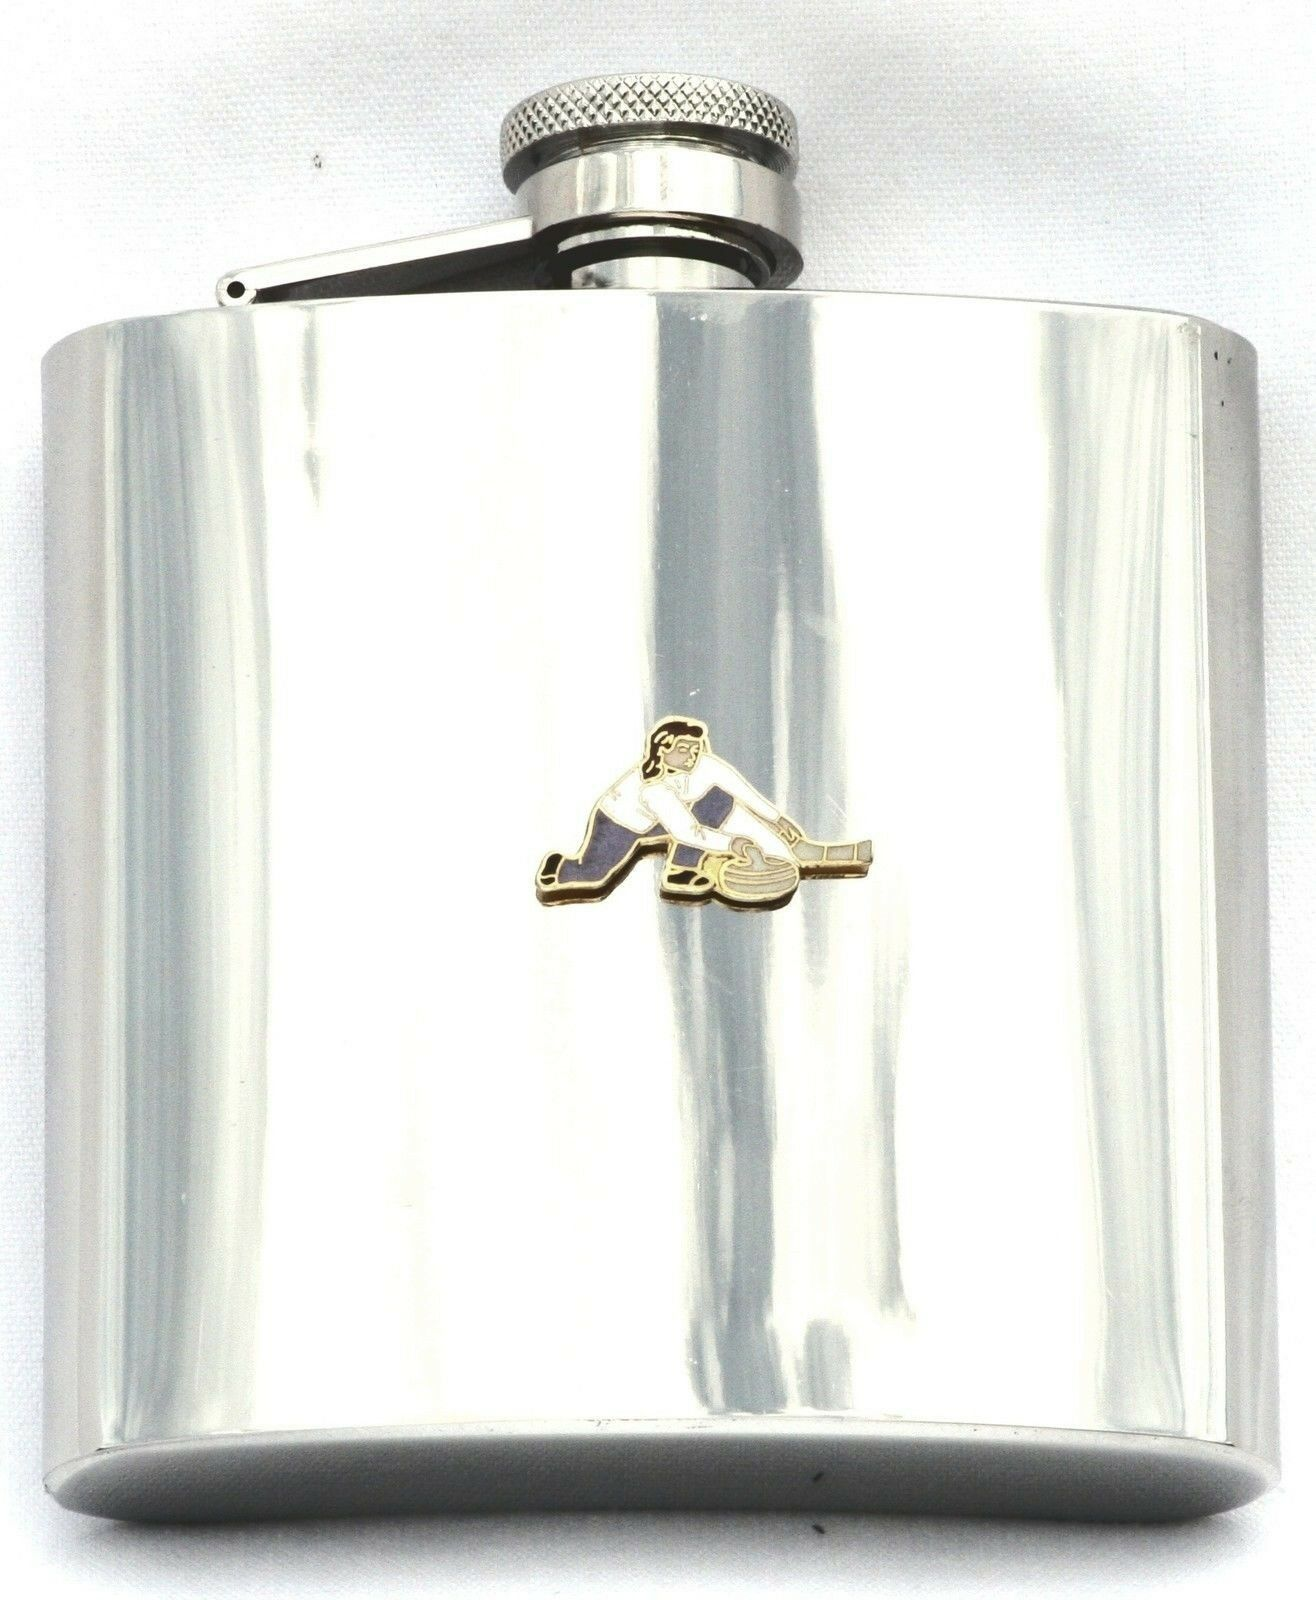 Female Curler Stainless Steel Hip Flask Curling Gift Award Free Engraving